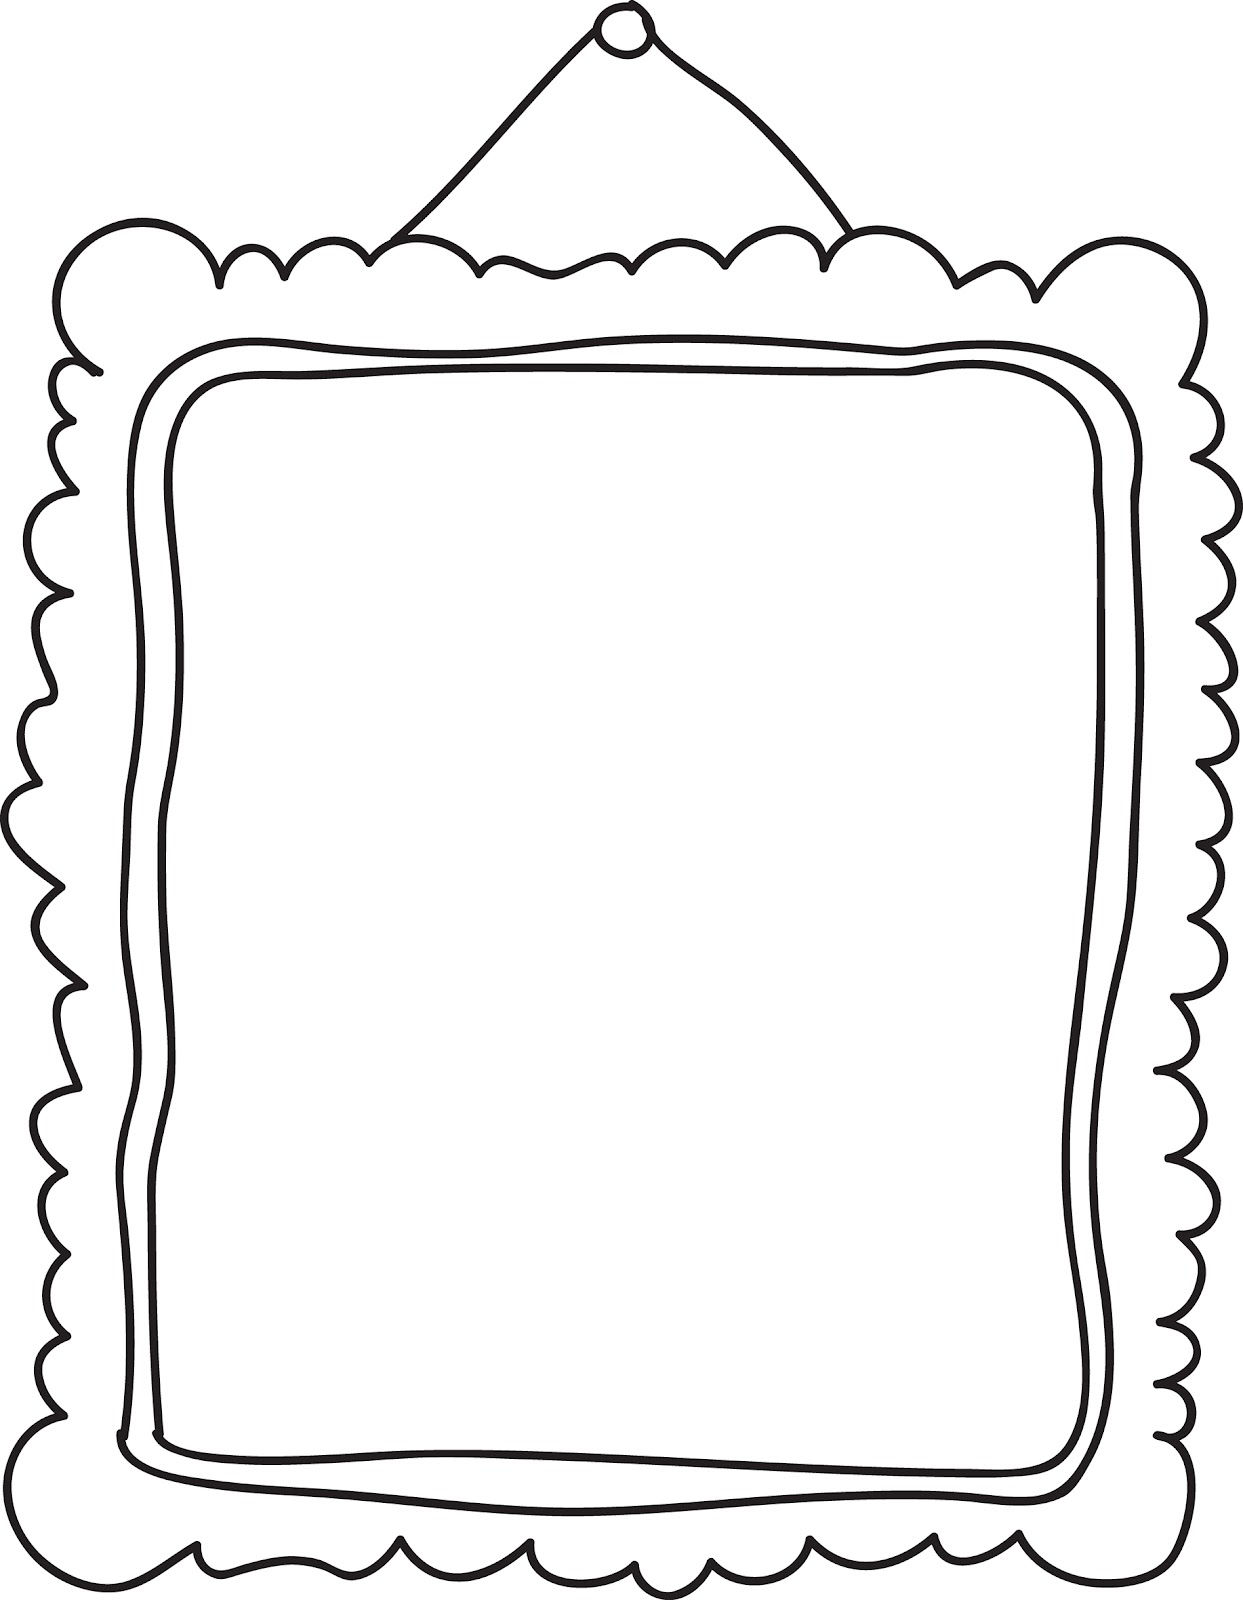 Clipart frame. Free frames cliparts download